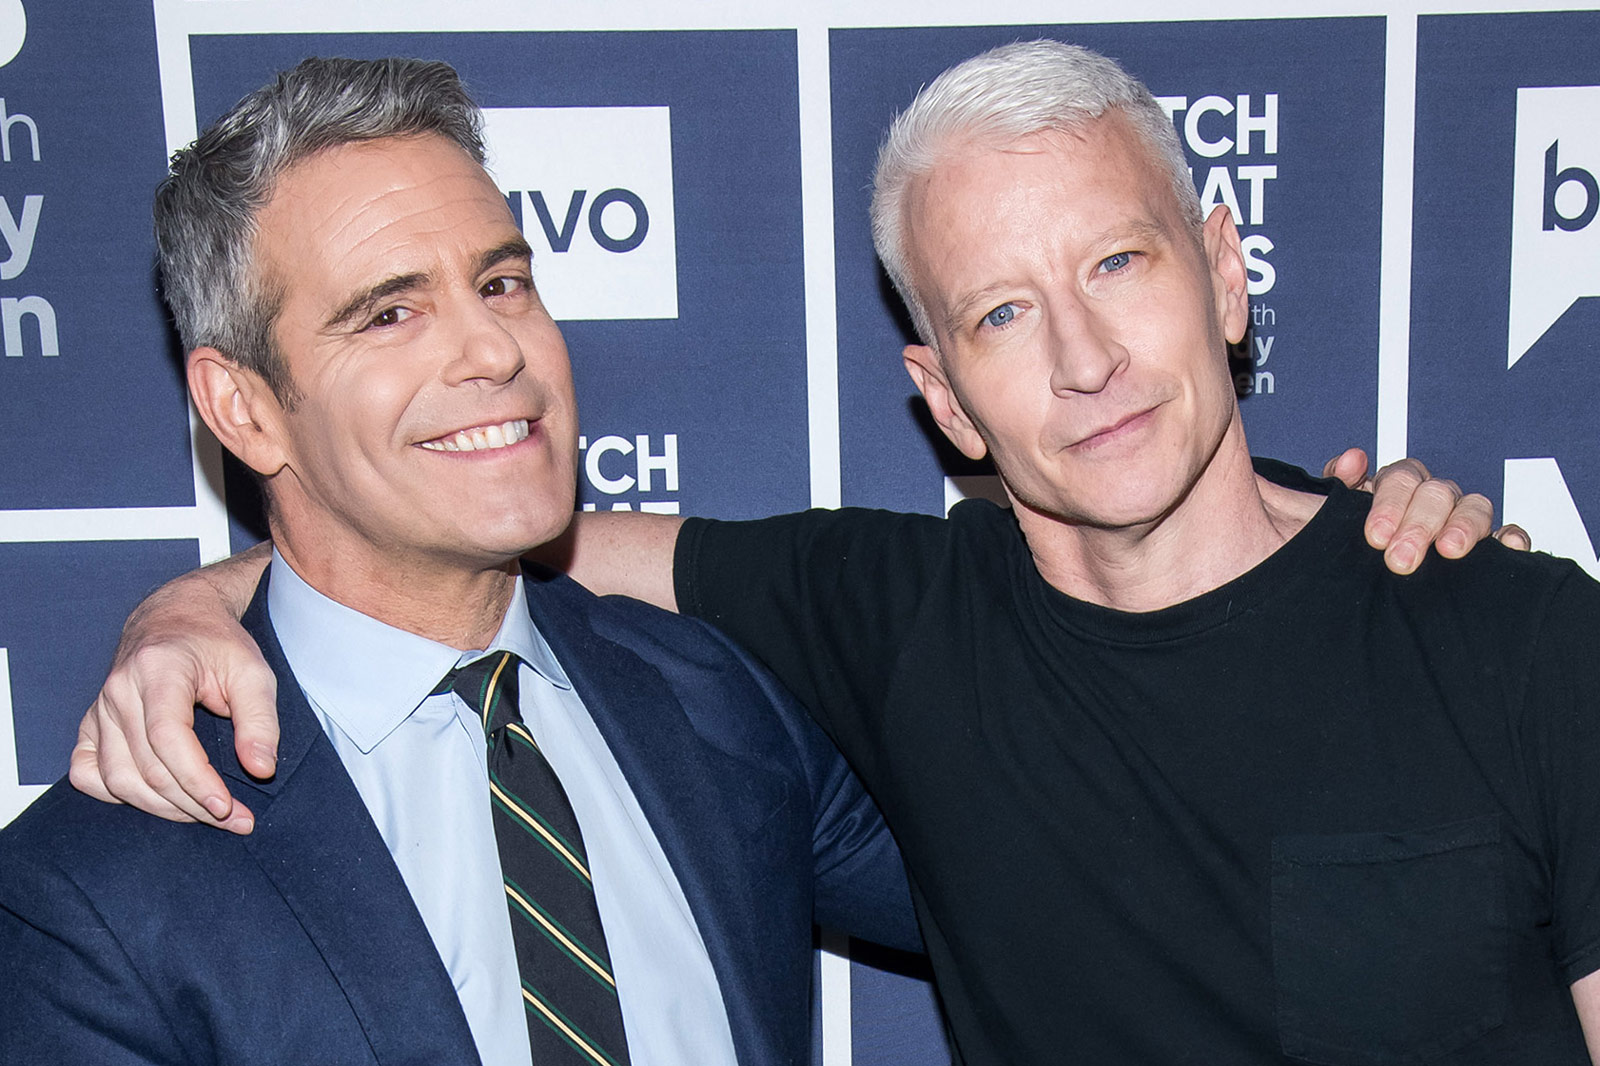 Andy Cohen Anderson Cooper Vpr Reunion